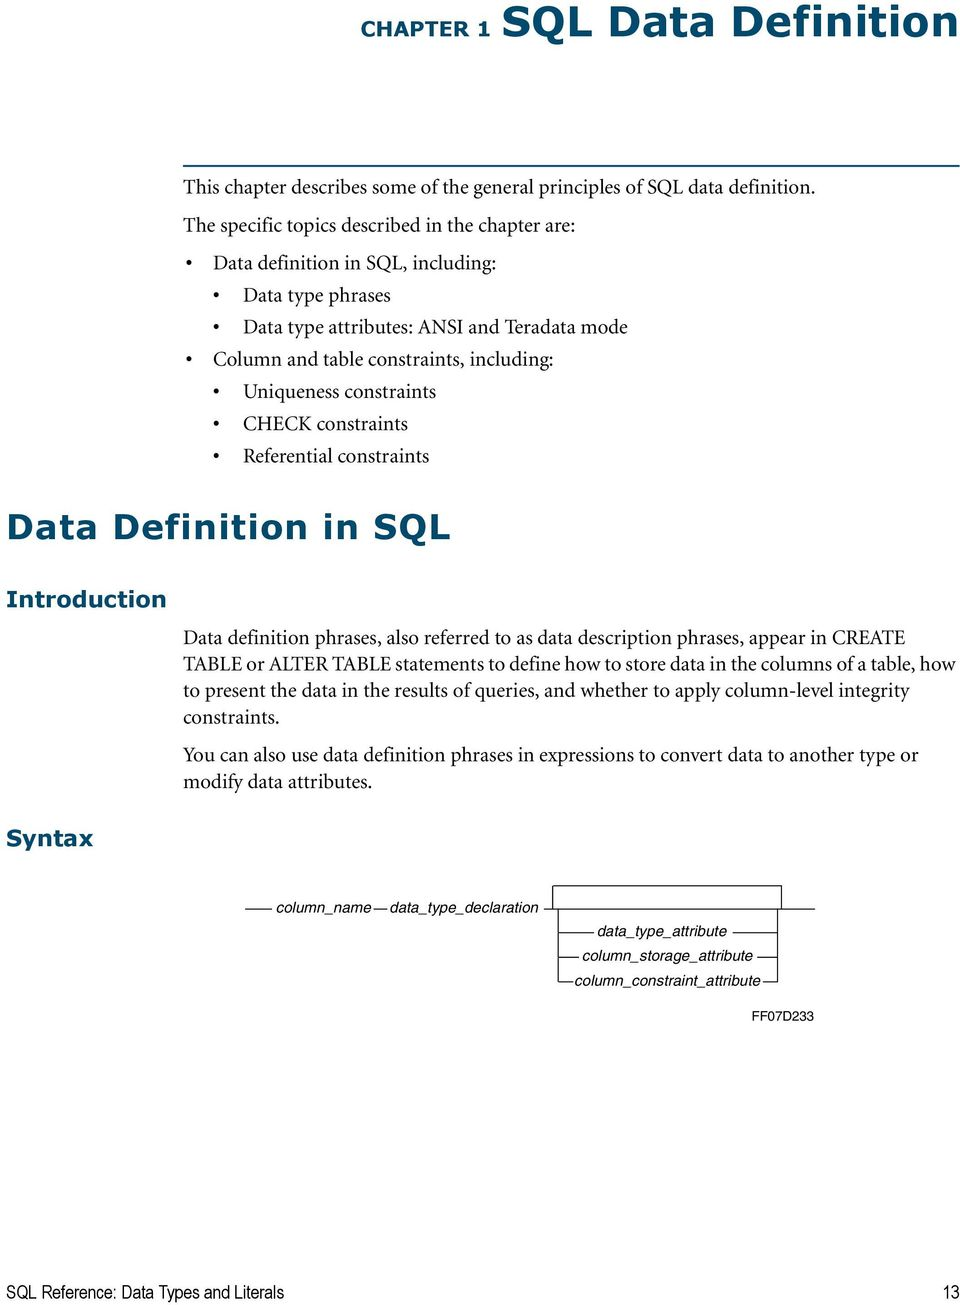 Teradata Database  SQL Reference  Data Types and Literals - PDF